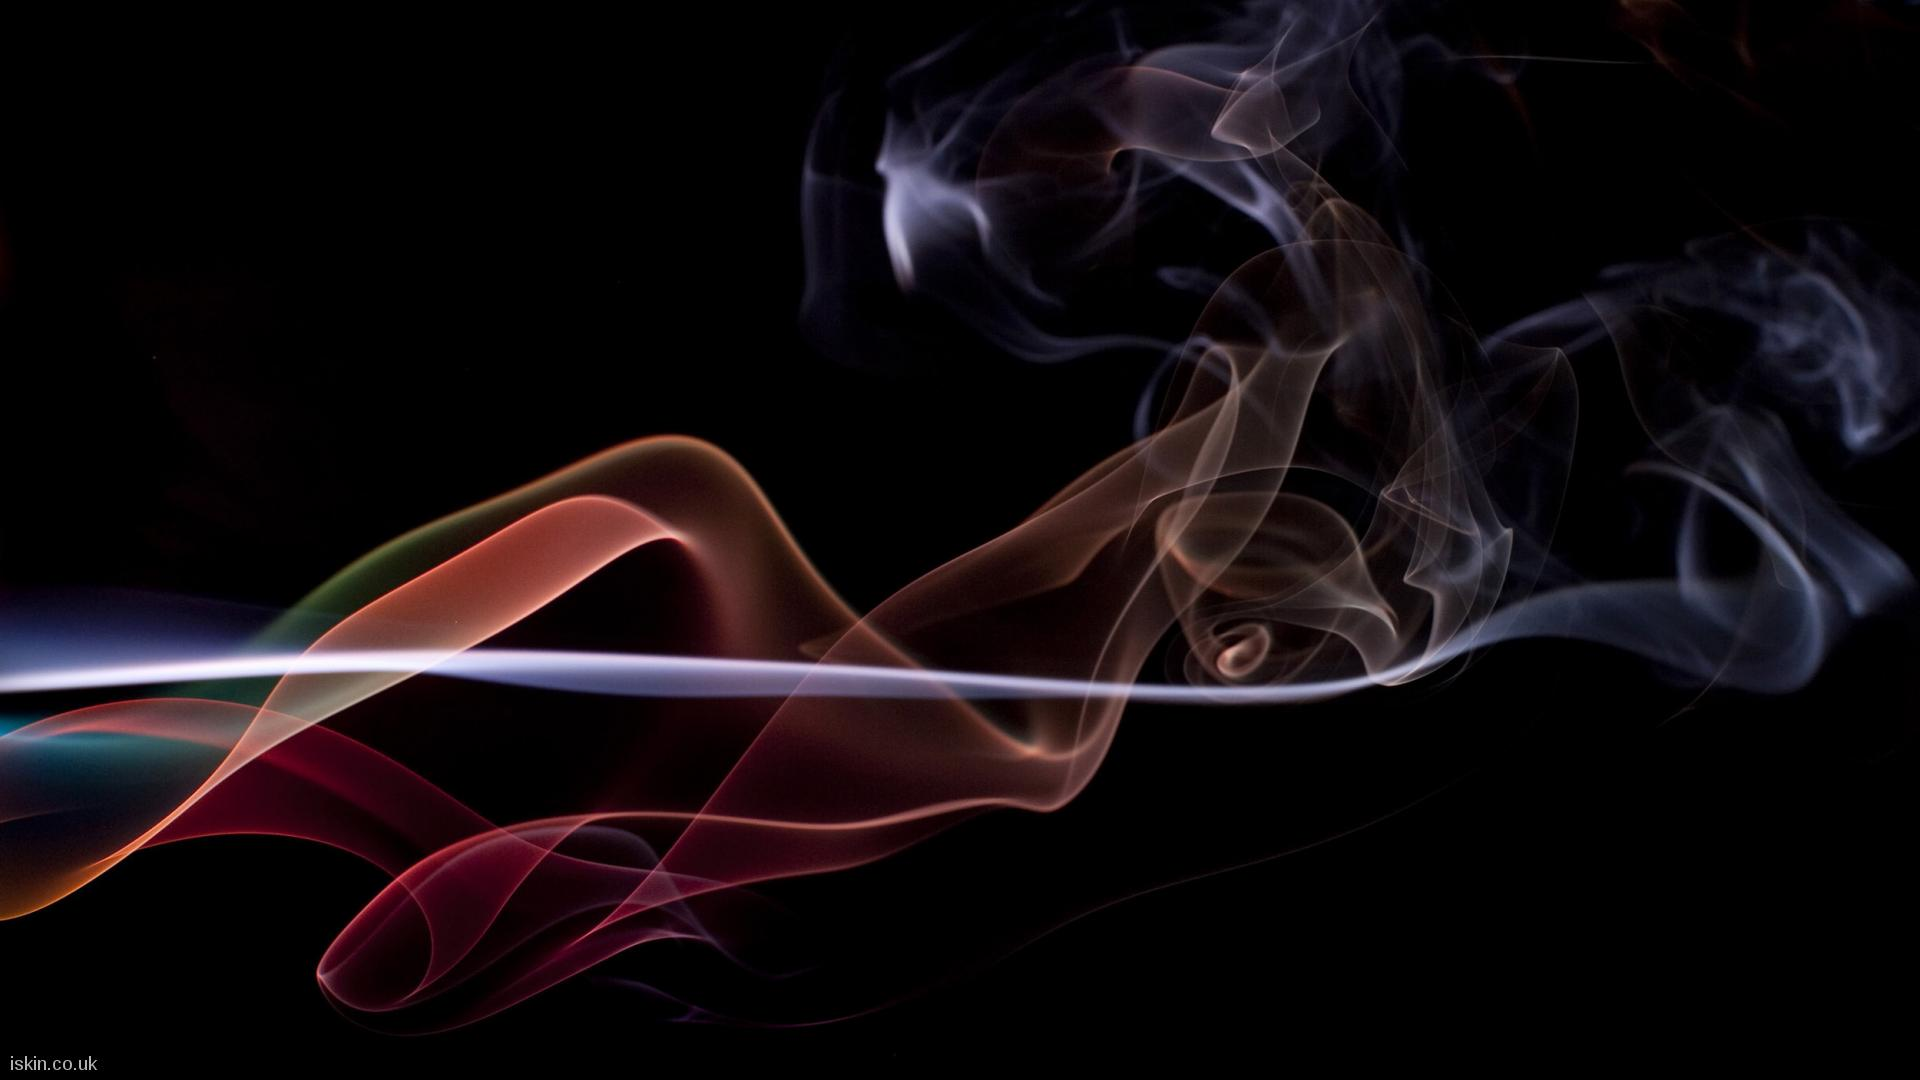 desktop image twisting smoke background